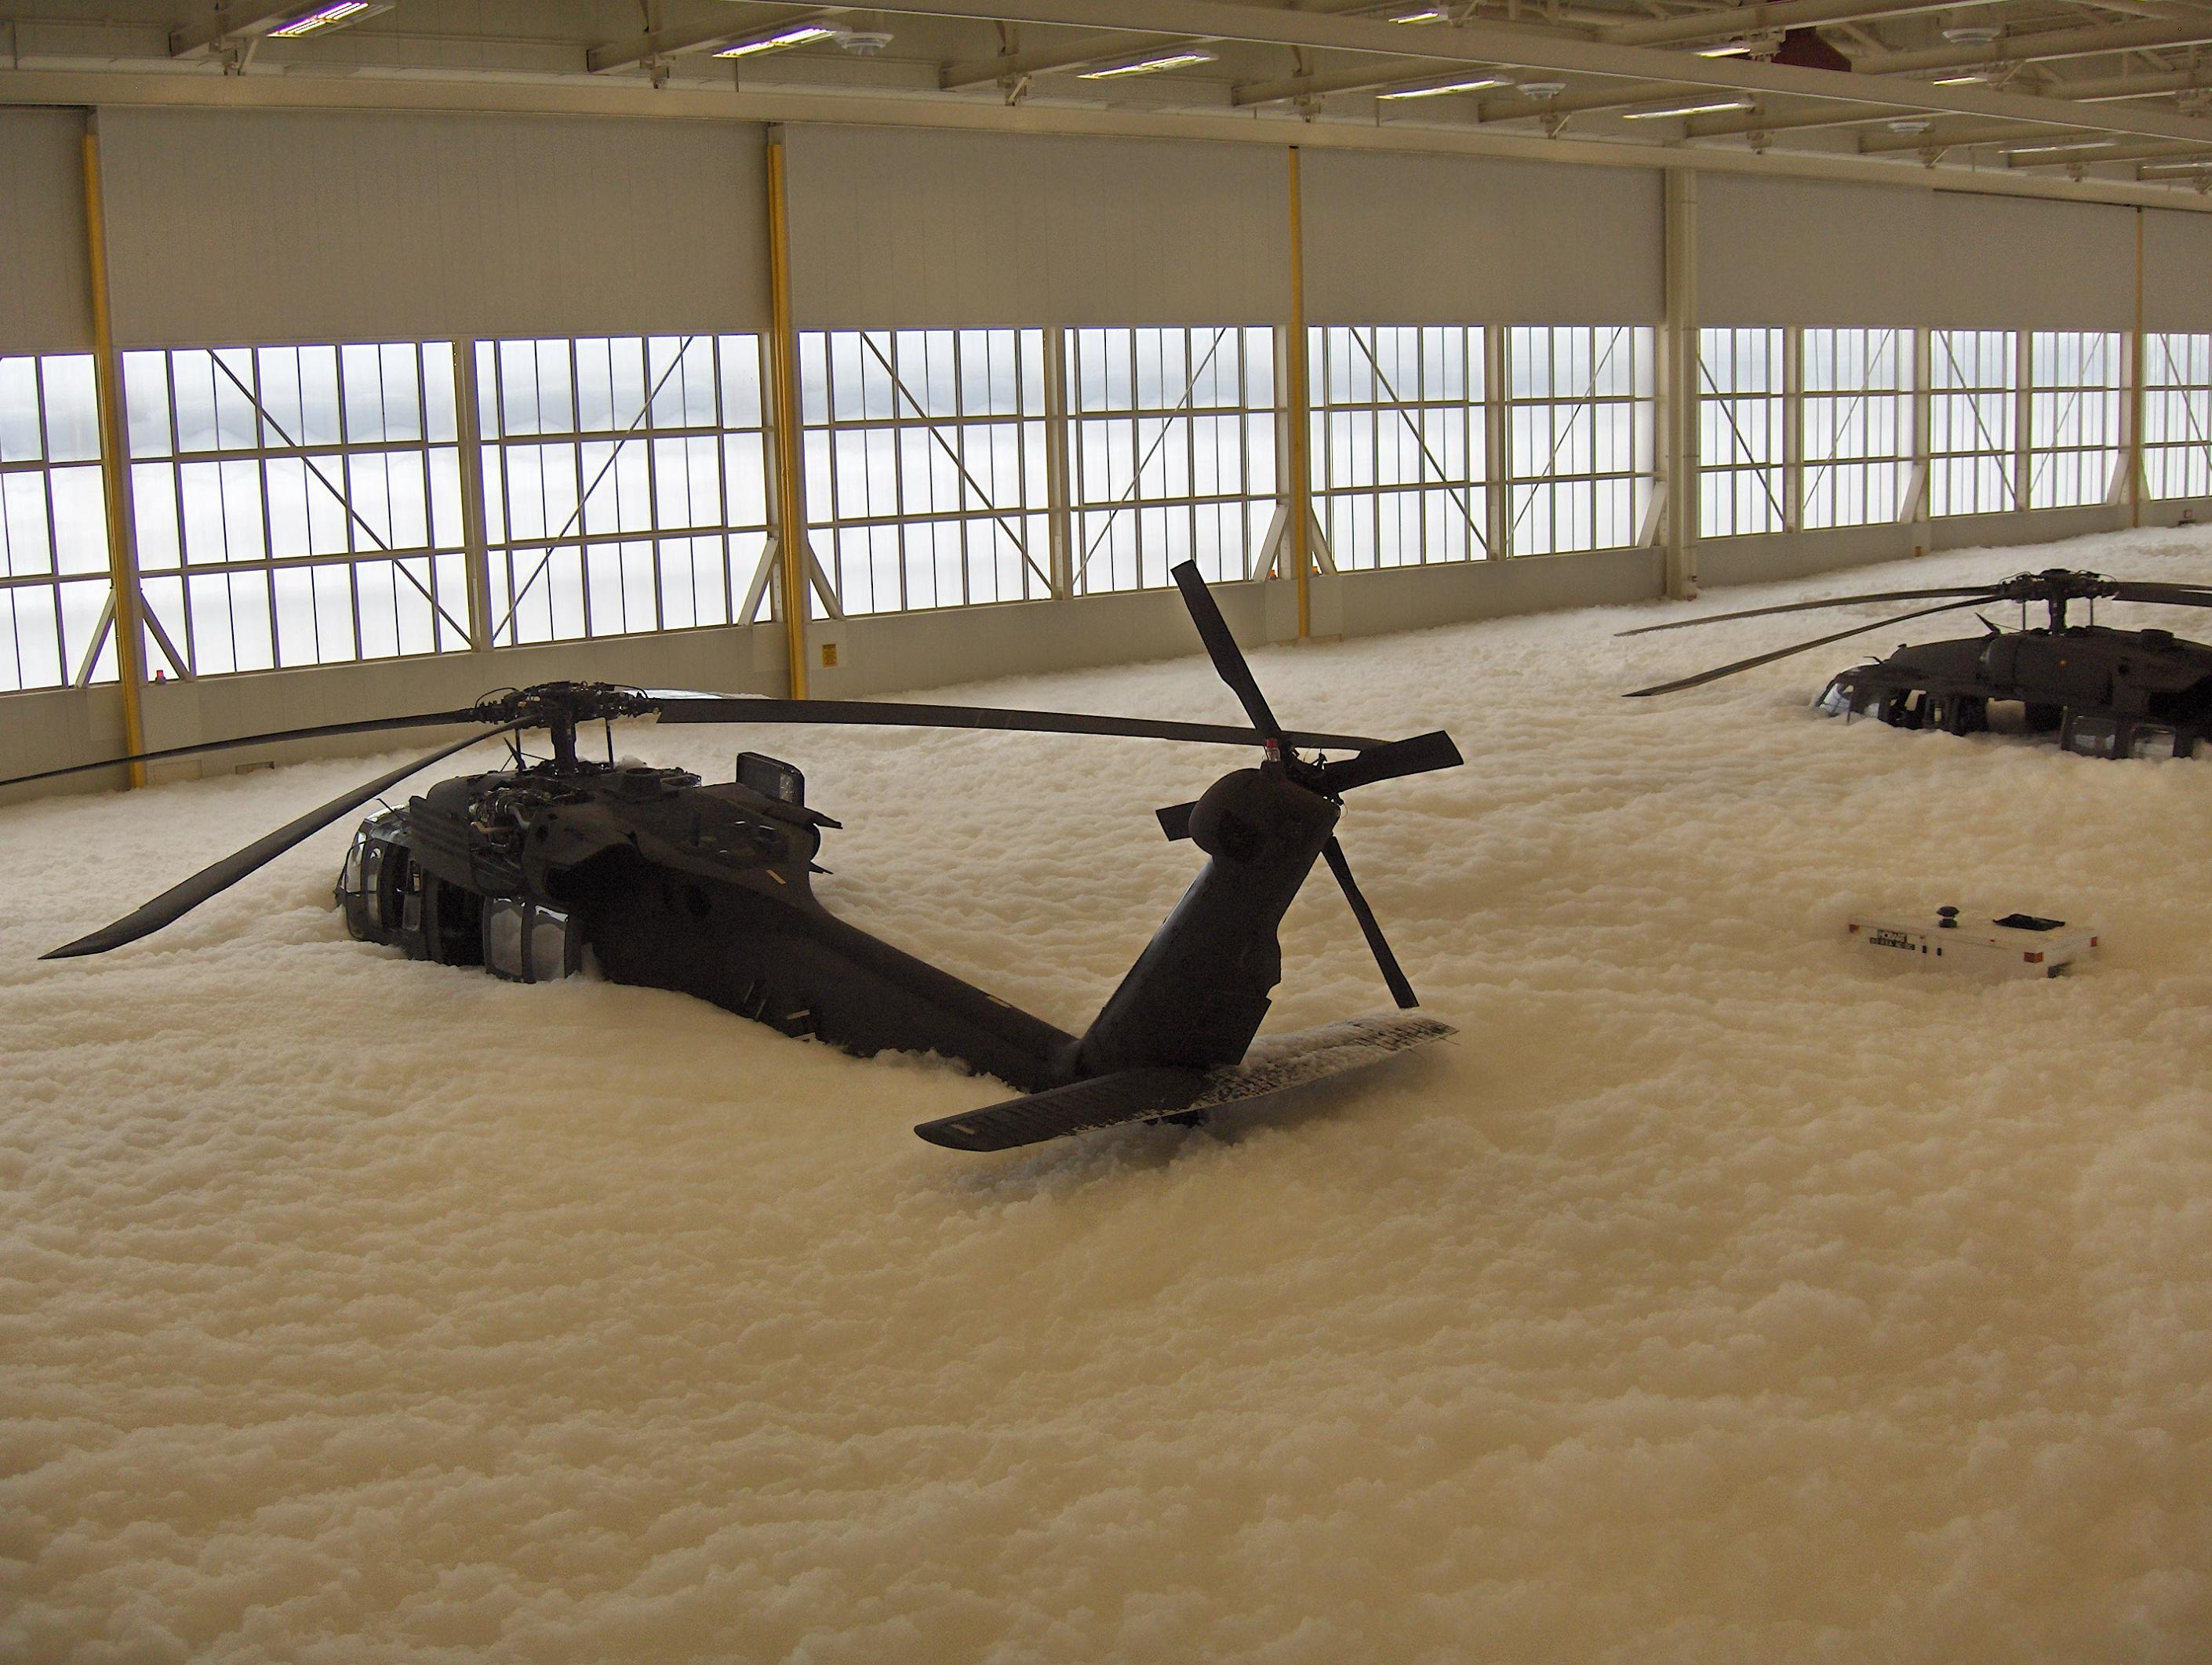 national guard helicopter crash with Foam on 480688960209371786 as well Flight Crew Killed Black Hawk Training Crash Identified in addition Foam moreover Airline mishap photos besides Man Sentenced To Prison For Phony Mayday Calls To Coast Guard.